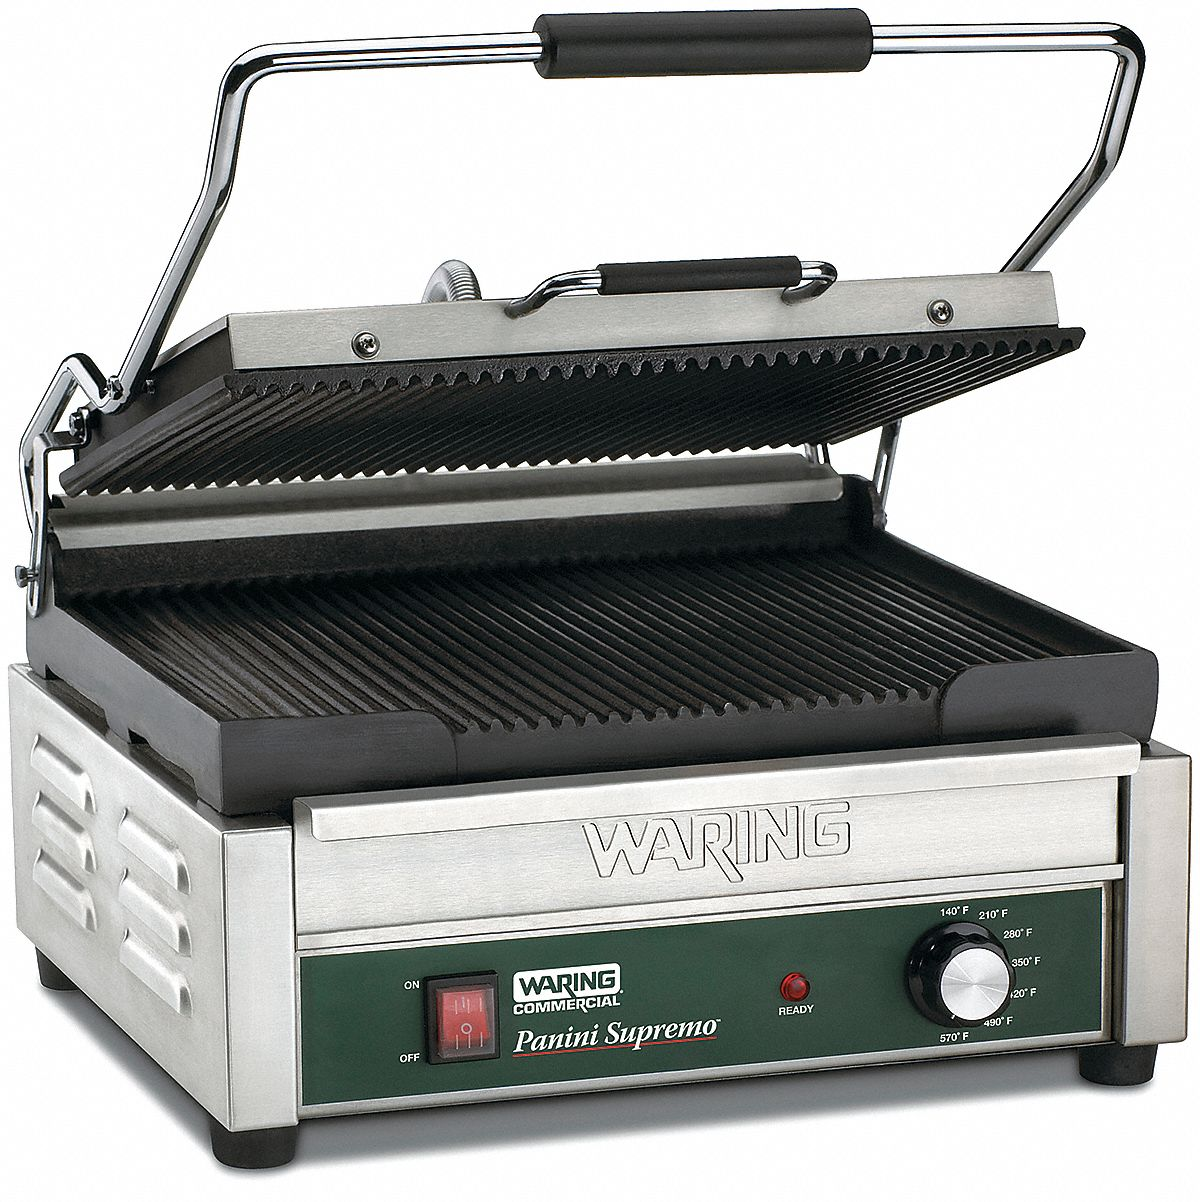 "17 1/2 in"" x 16 in"" x 9 1/2 in"" Ribbed Plates Large Panini Grill"